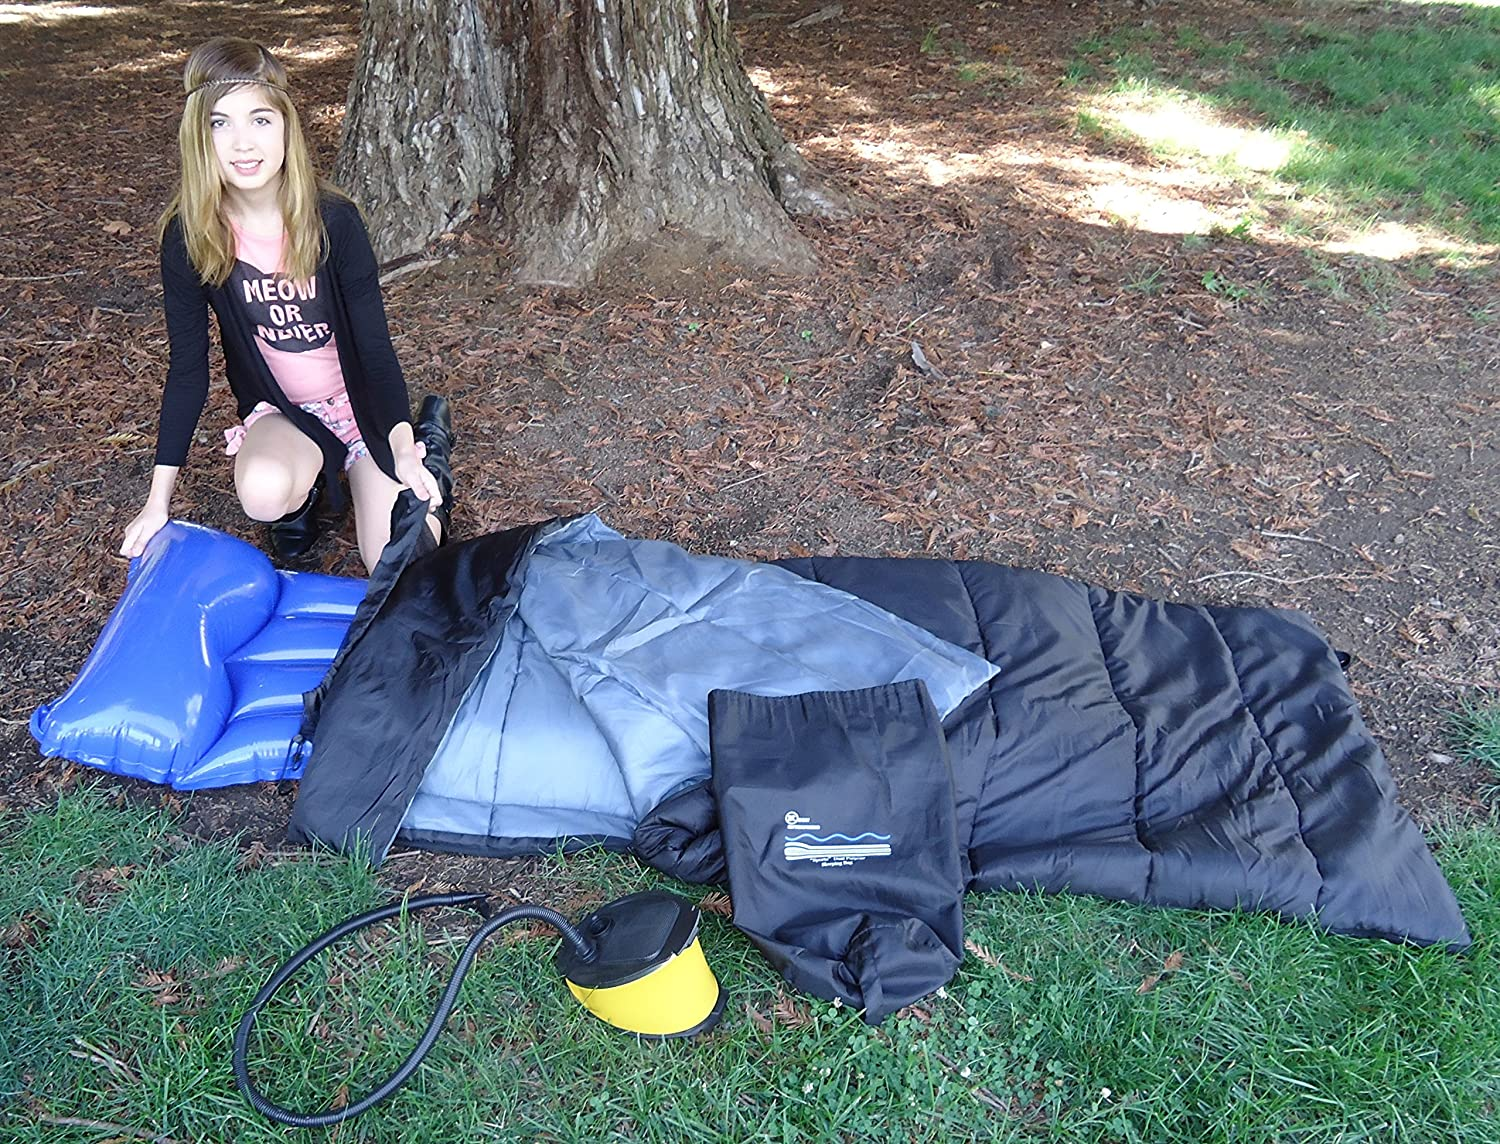 Keen Enterprises Sports Dual Purpose Air Mattress Sleeping Bag for Camping and Sleepovers it s Water resistant, and Durable. Fits Rubber Pads. Includes Bellows Foot Pump and Air mattress Youtube